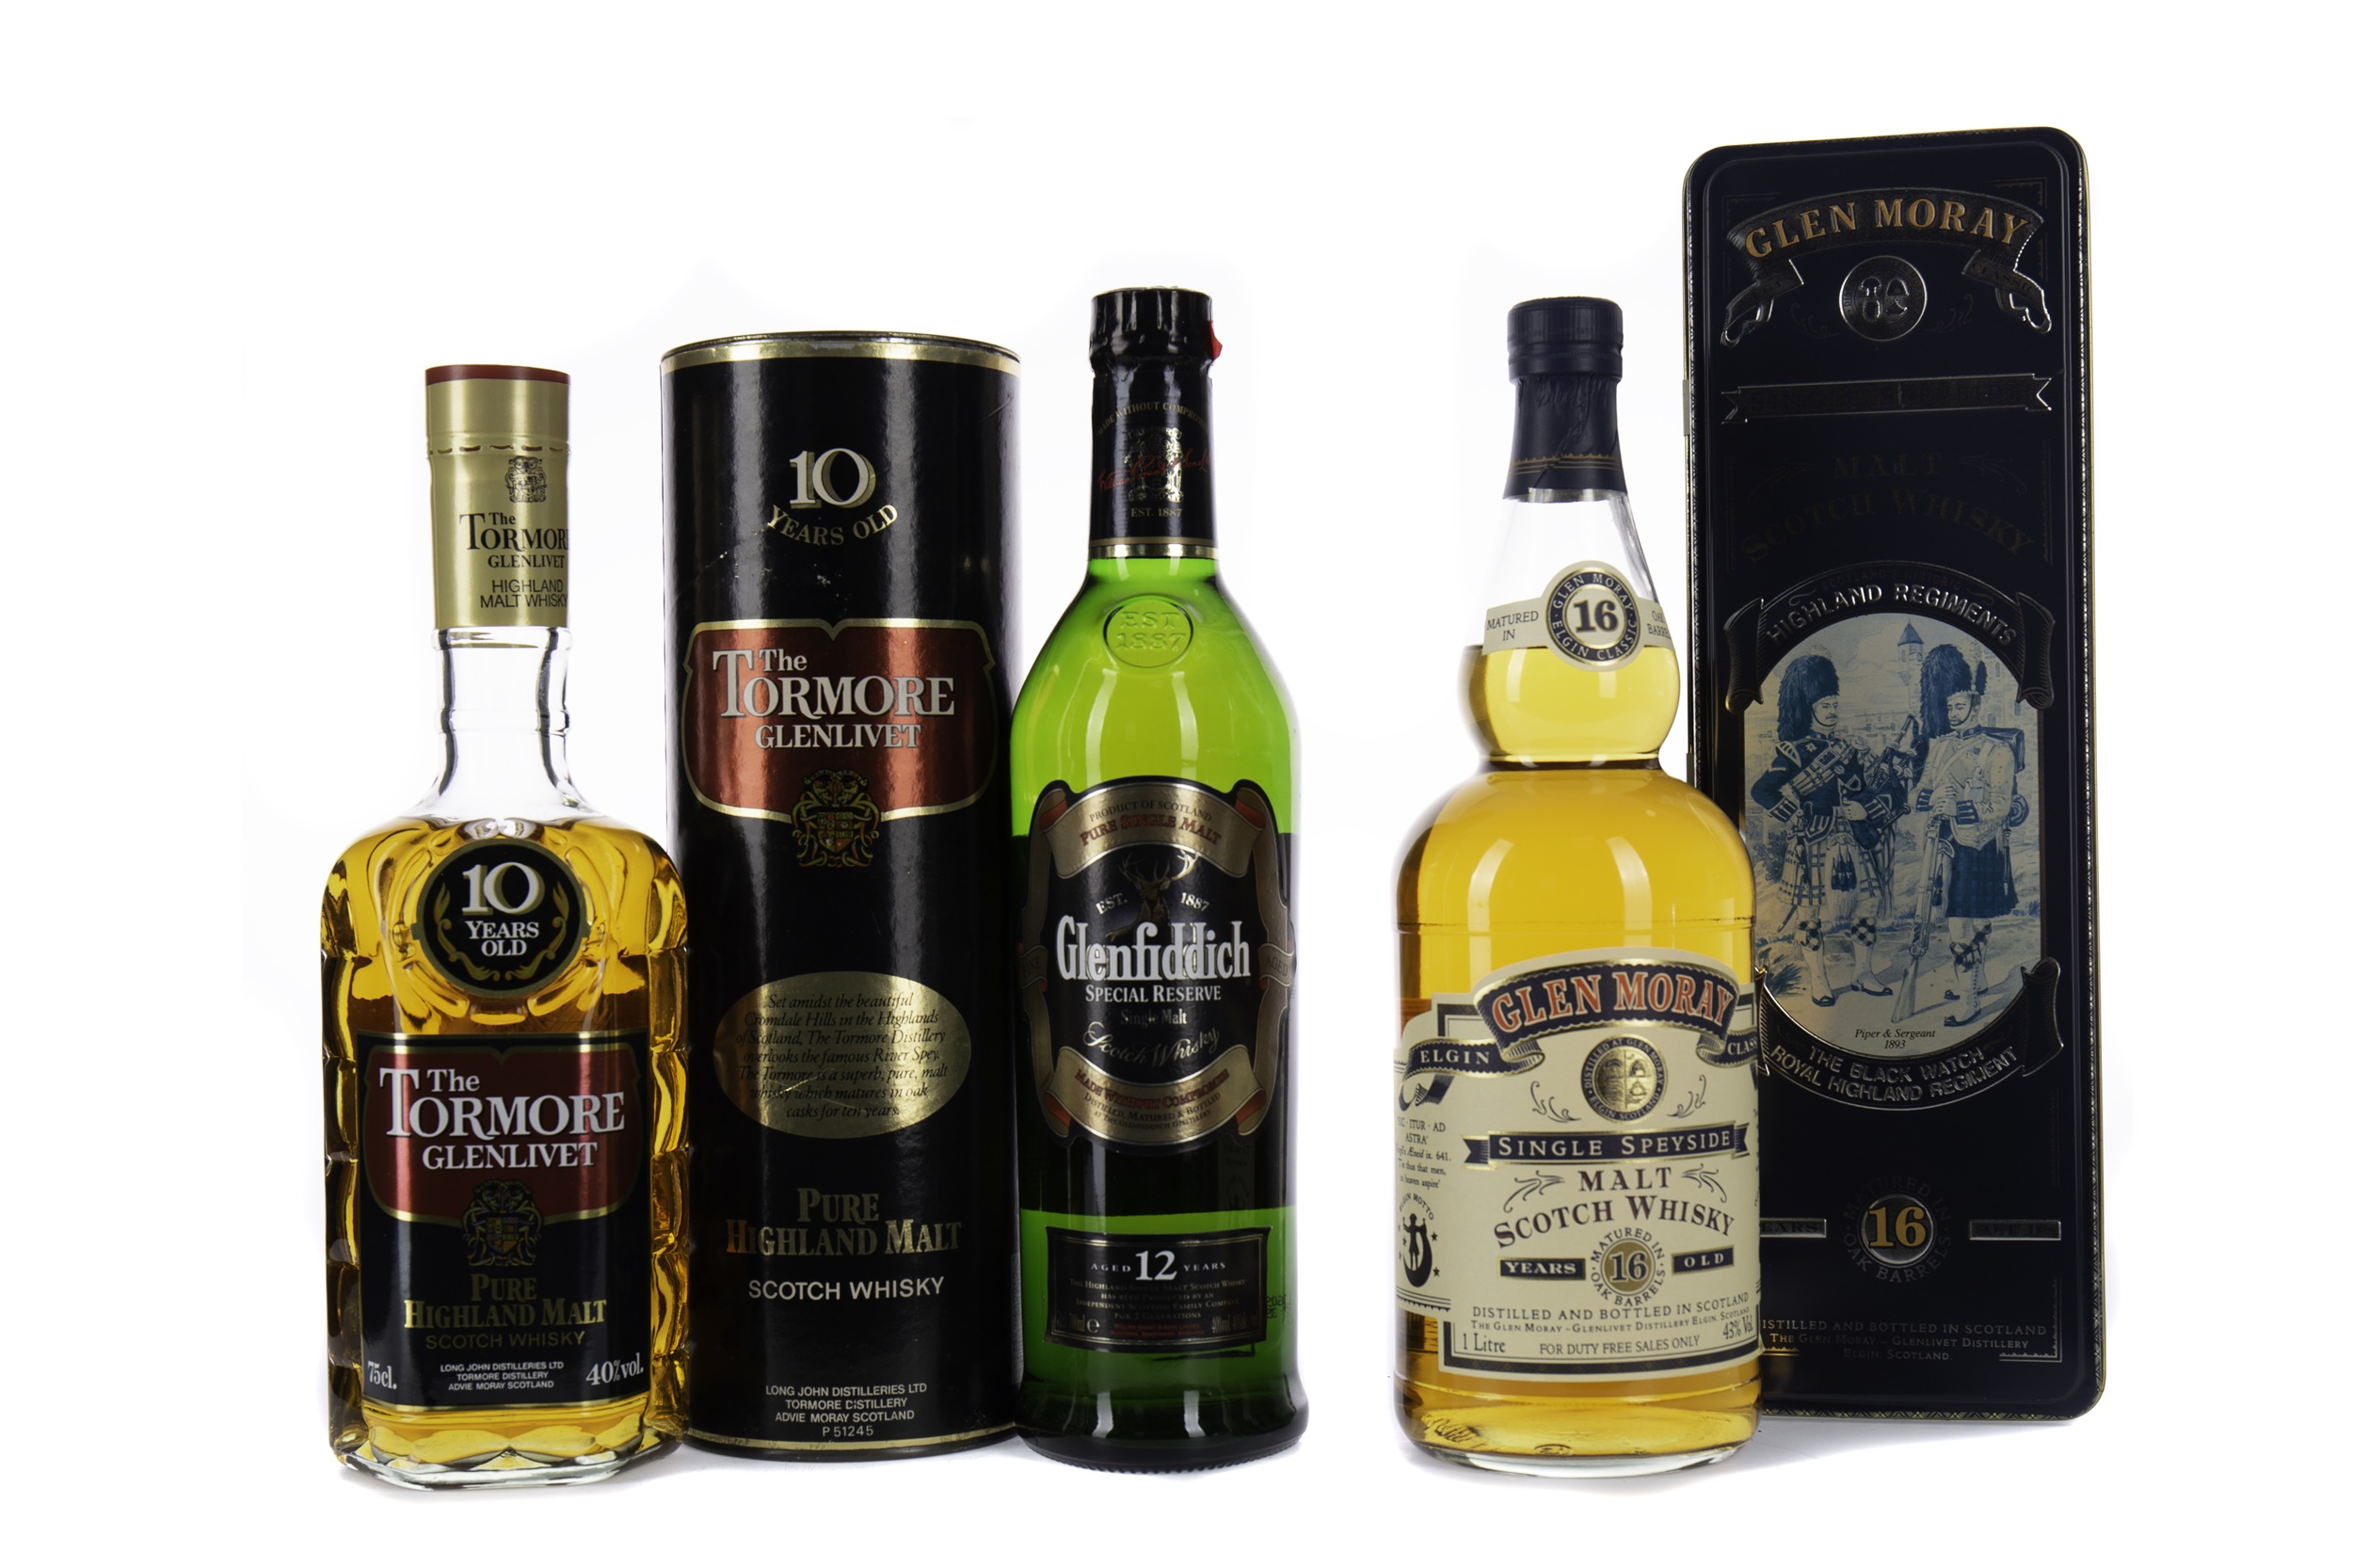 TORMORE-GLENLIVET 10 YEARS OLD, GLENFIDDICH 12 YEARS OLD AND GLEN MORAY AGED 16 YEARS